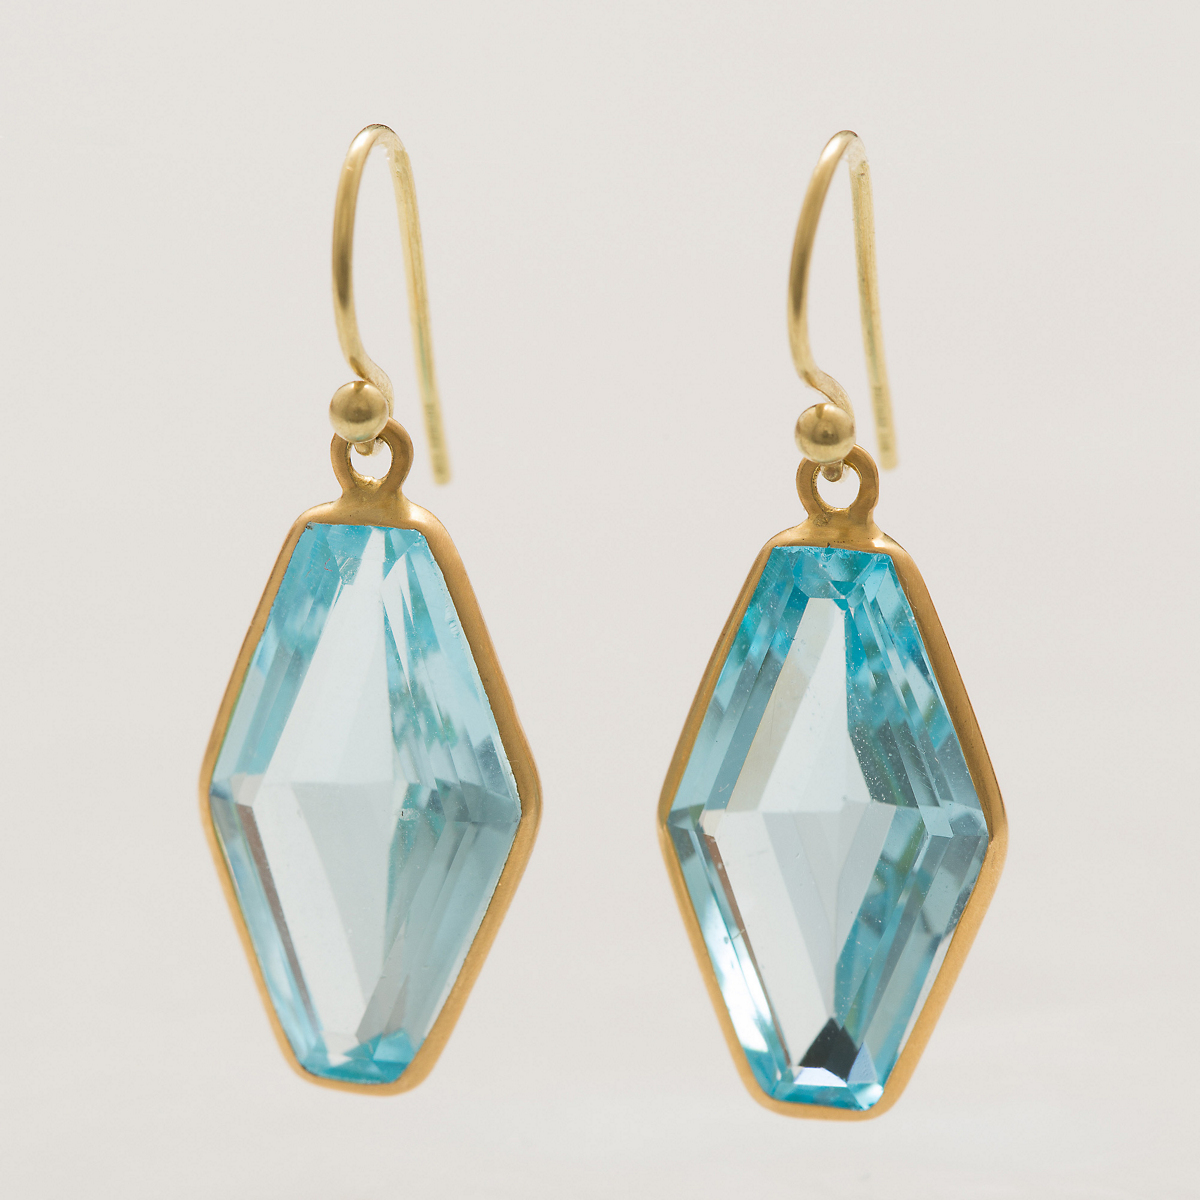 Kothari Blue Topaz Kite Earrings